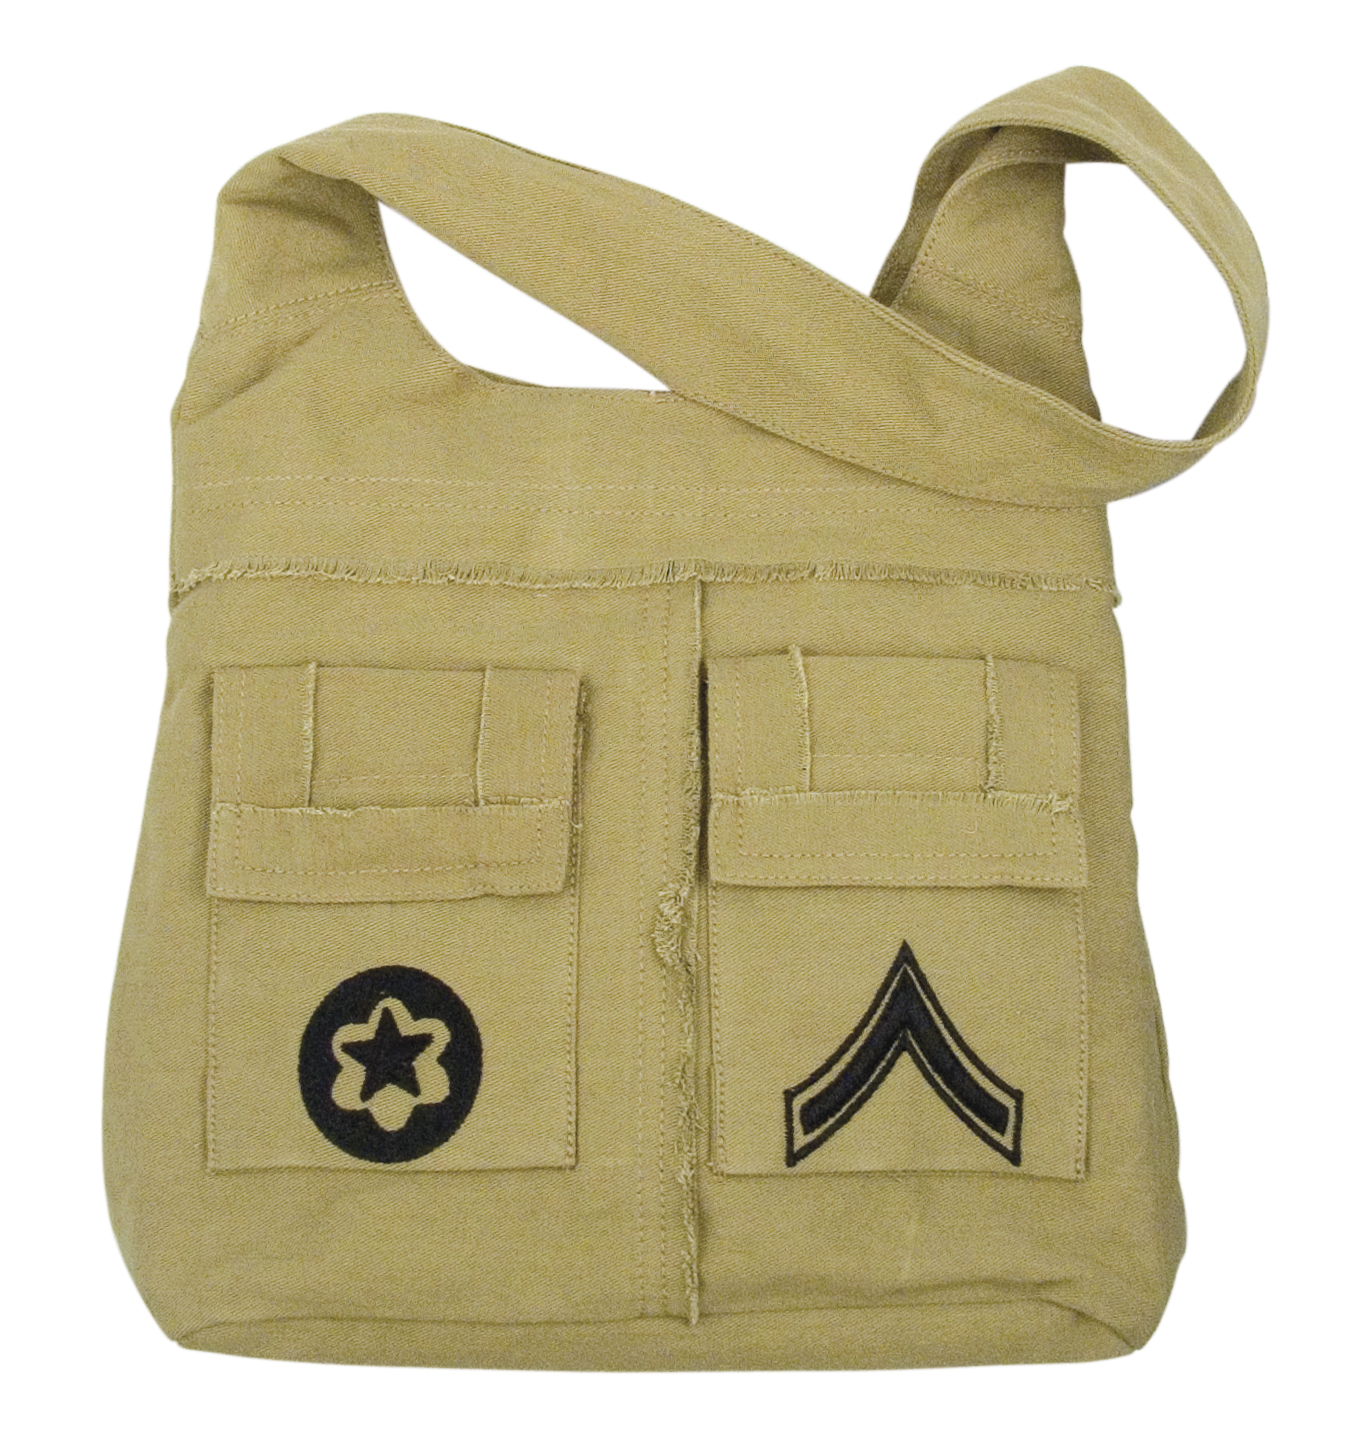 Vintage Khaki Uni-Strap Bag Makes a Great Purse